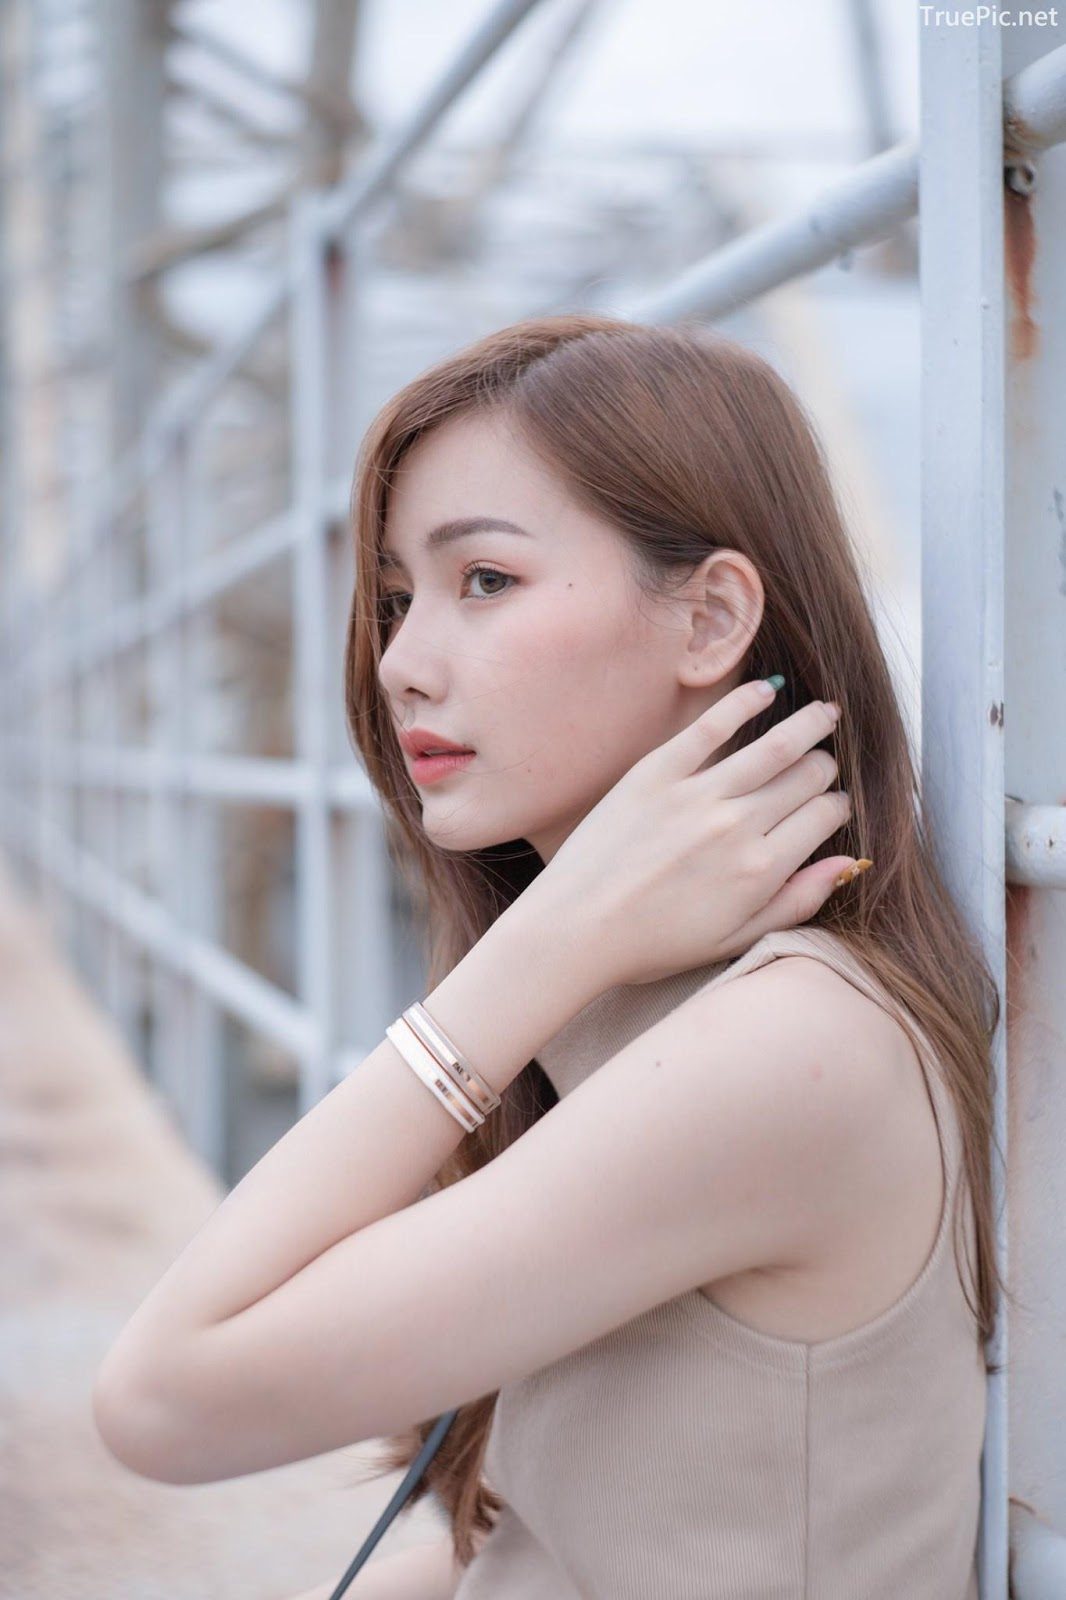 Thailand beautiful model - Pla Kewalin Udomaksorn - A beautiful morning with a cute girl - Picture 7